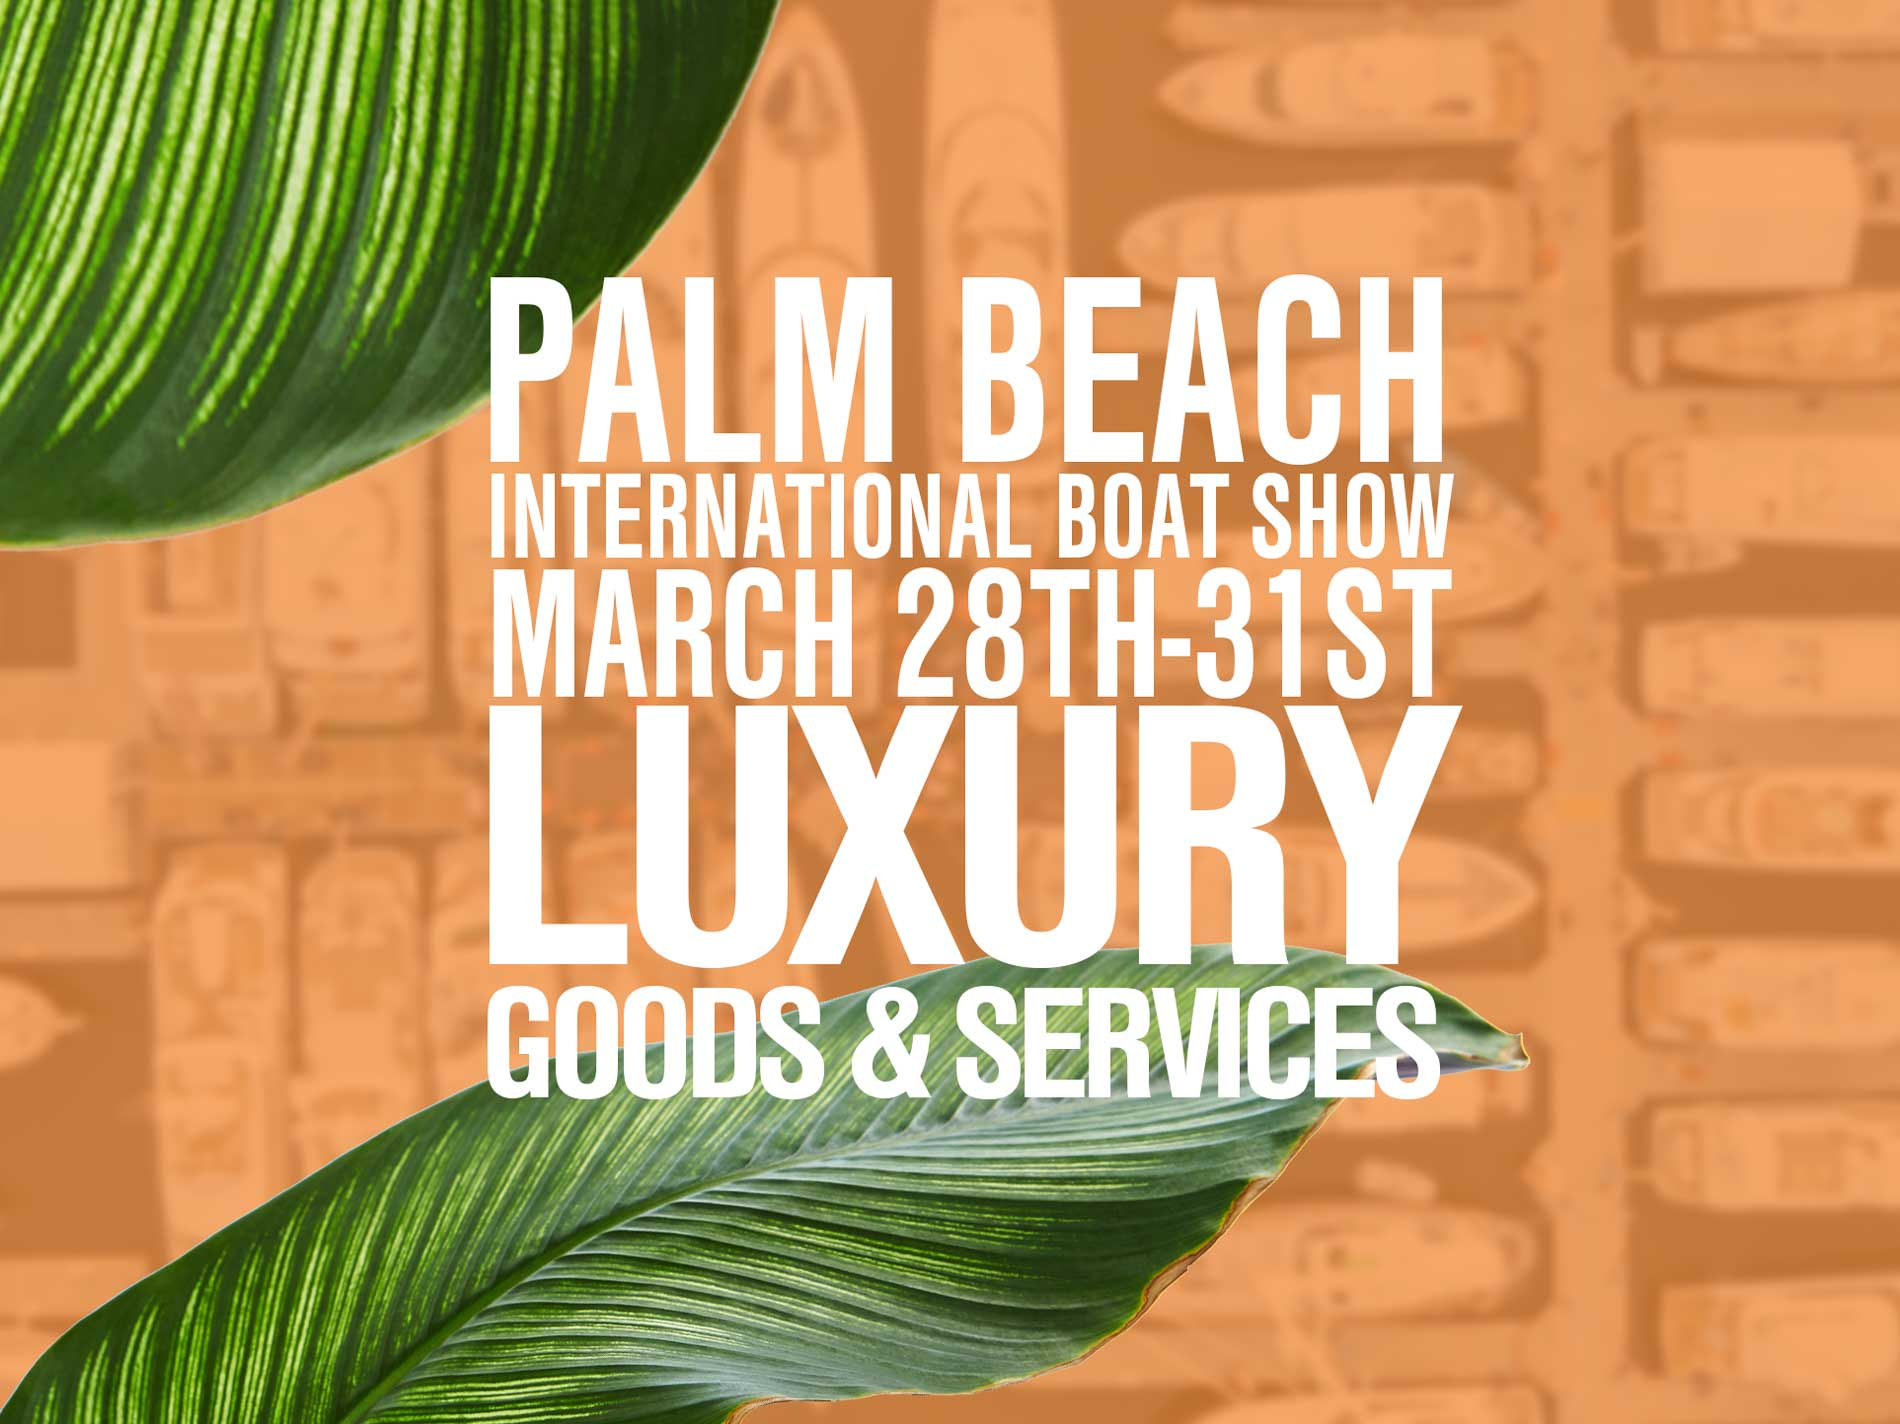 Palm Beach International Boat Show Preferred Luxury Partners